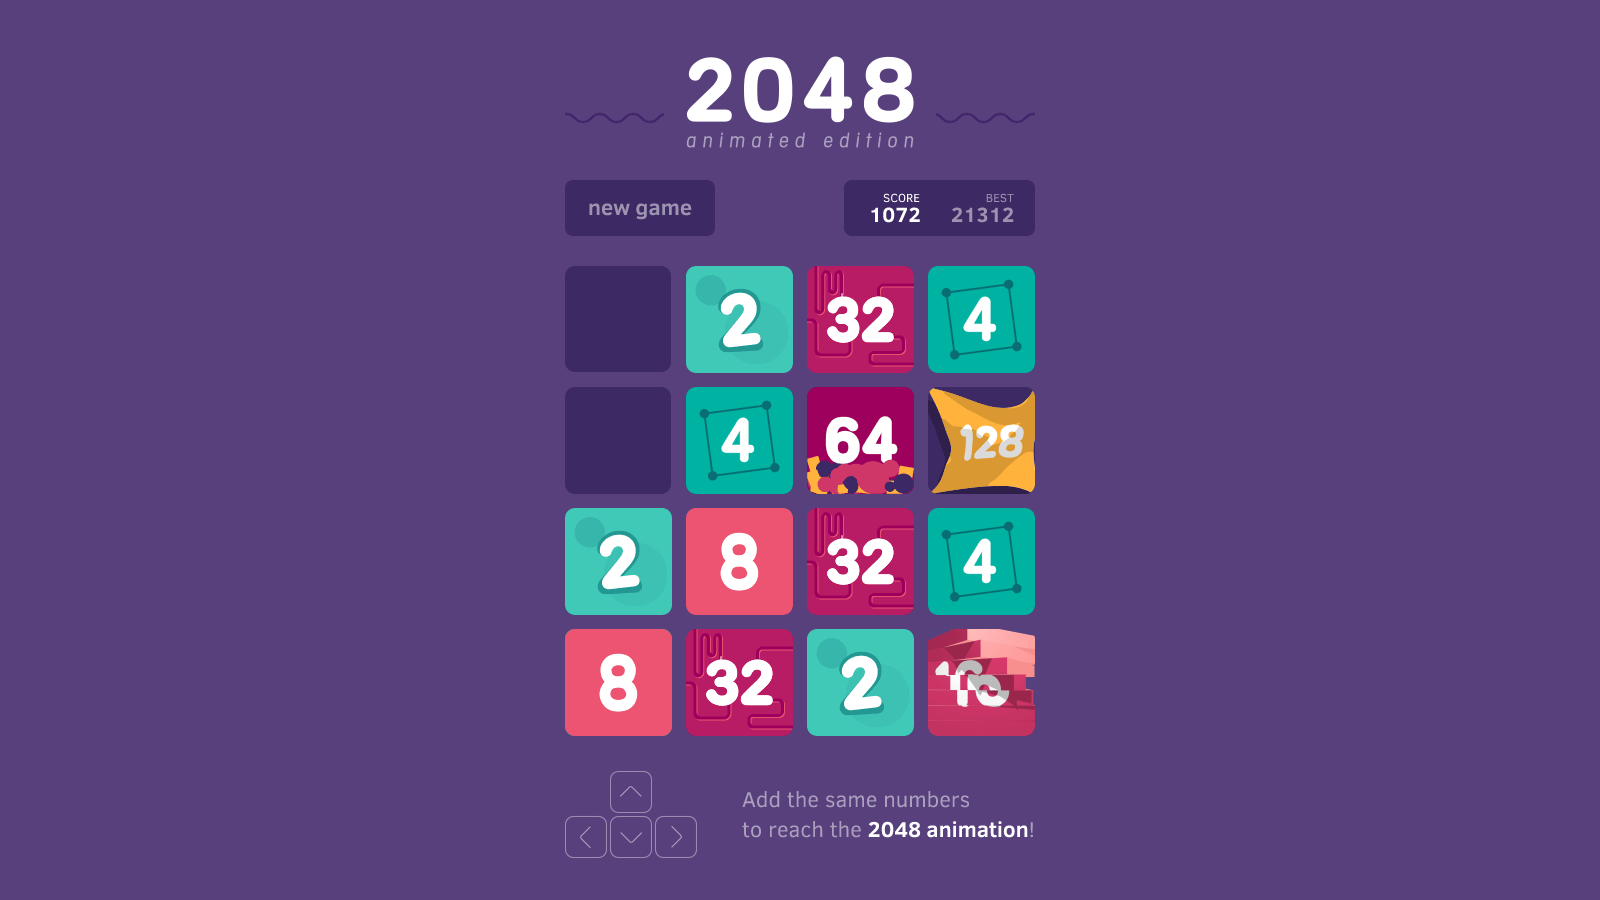 2048 - Animated edition